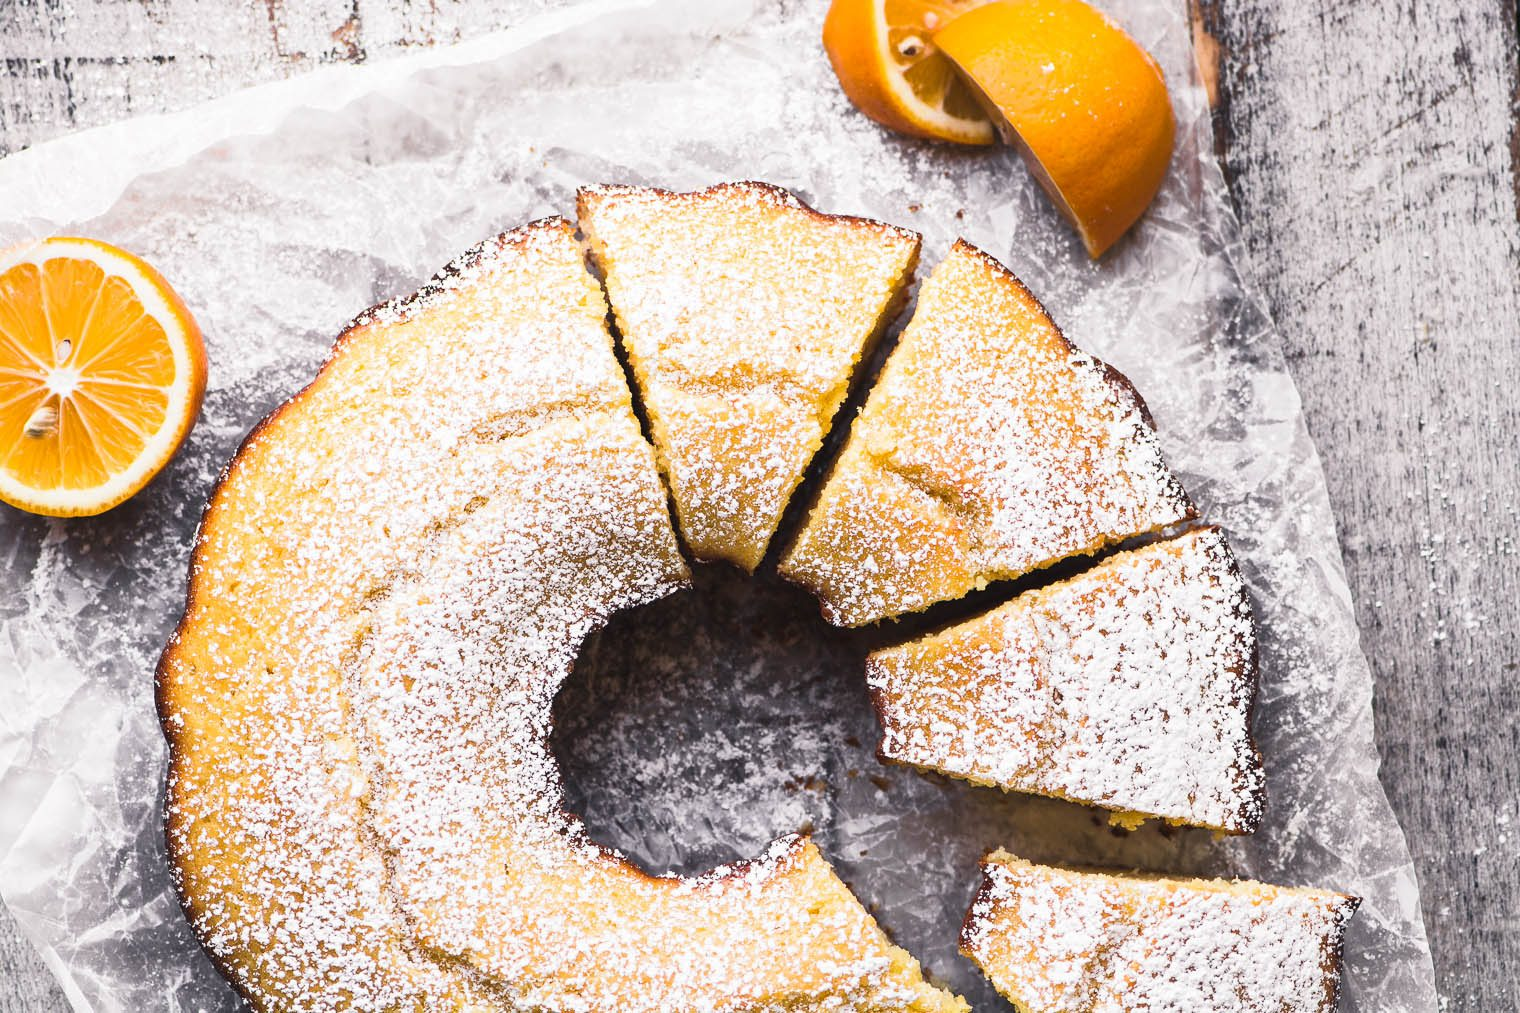 Lemon Yogurt Breakfast Cake